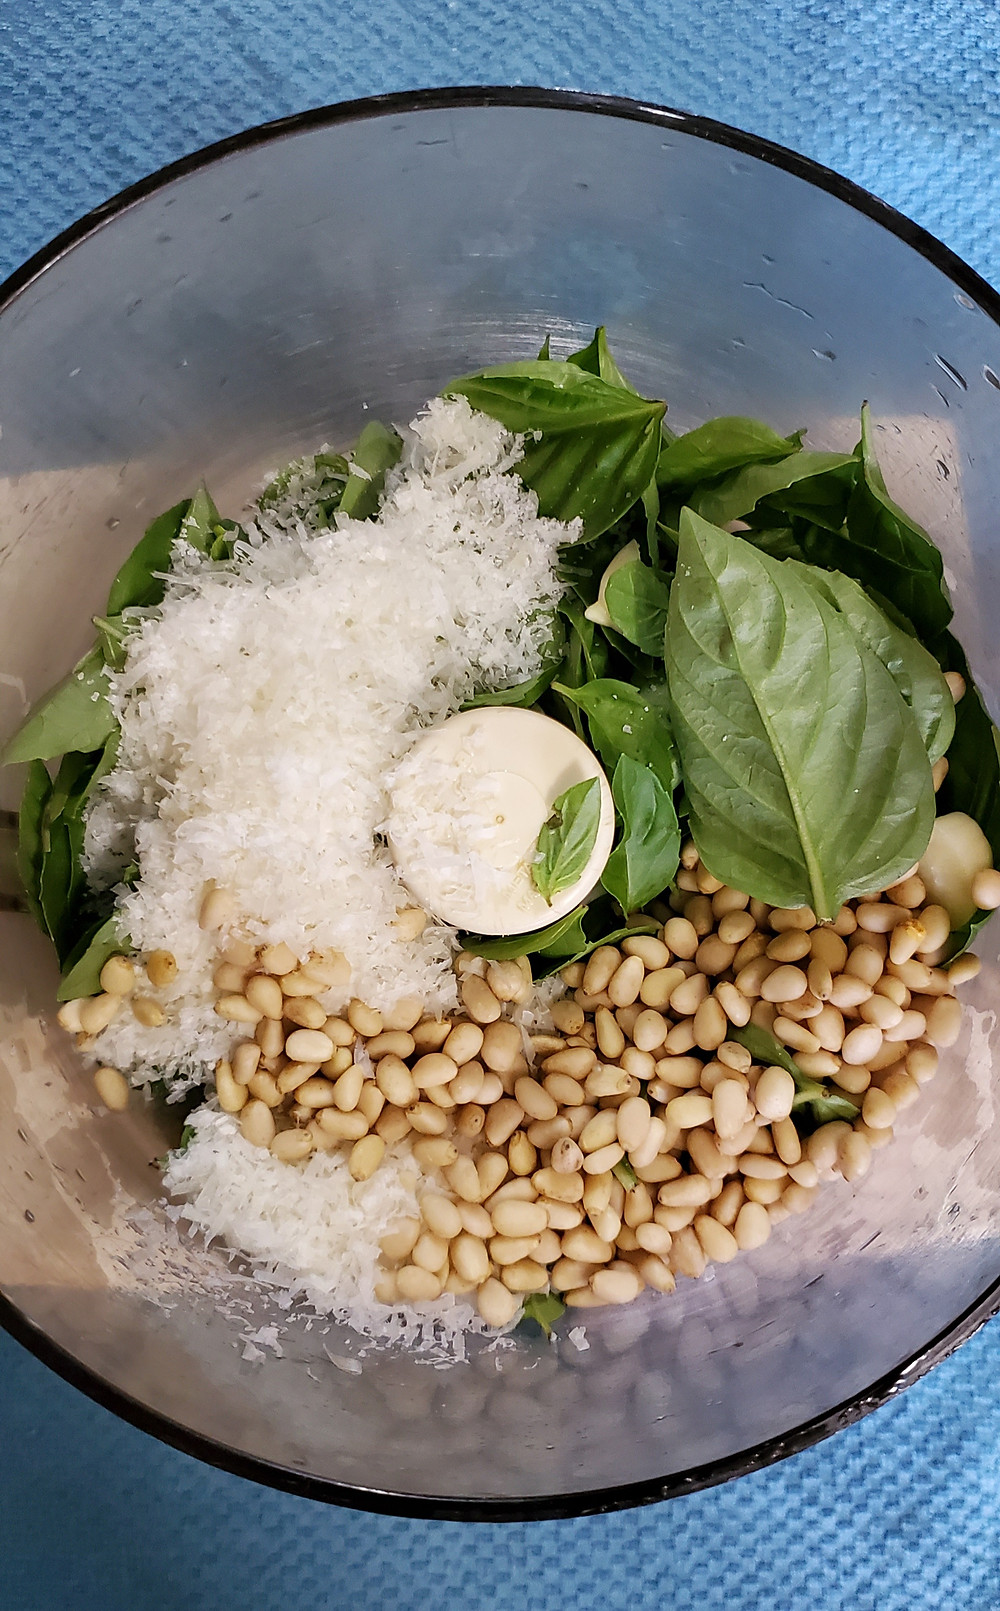 The basket of a food processor rests on a blue background. In it are pine nuts, Parmesan cheese, and basil leaves. End photo ID.